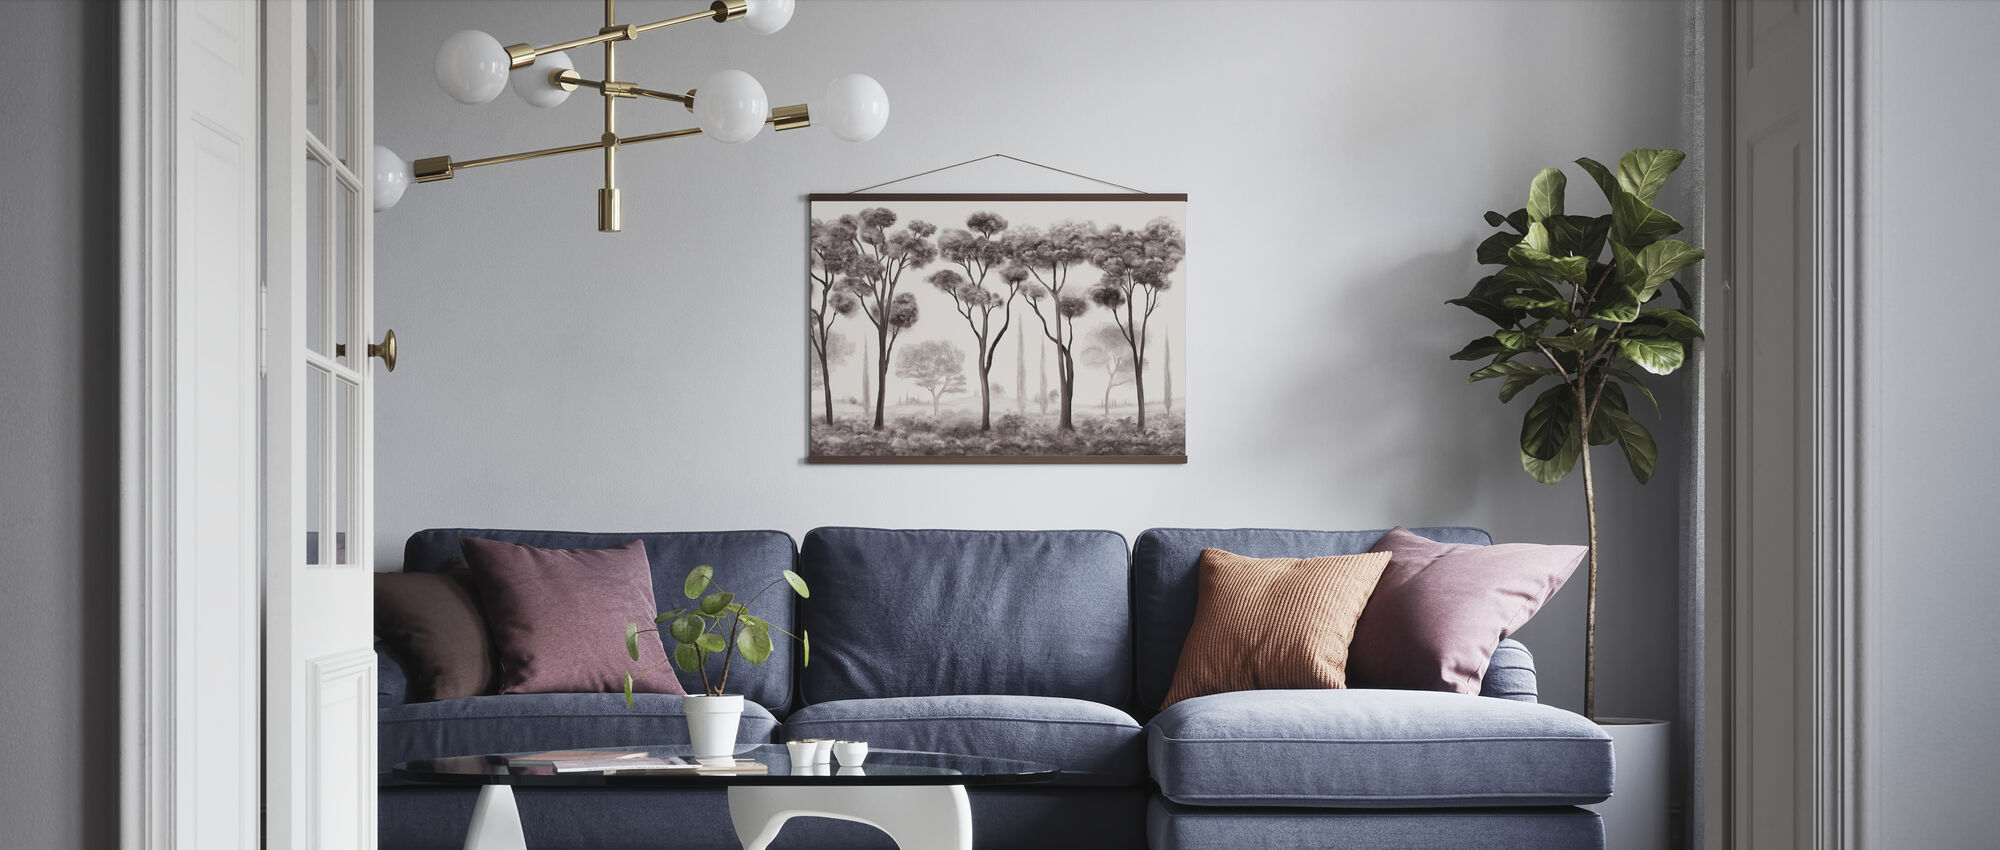 Light and Shade - Plum - Poster - Living Room